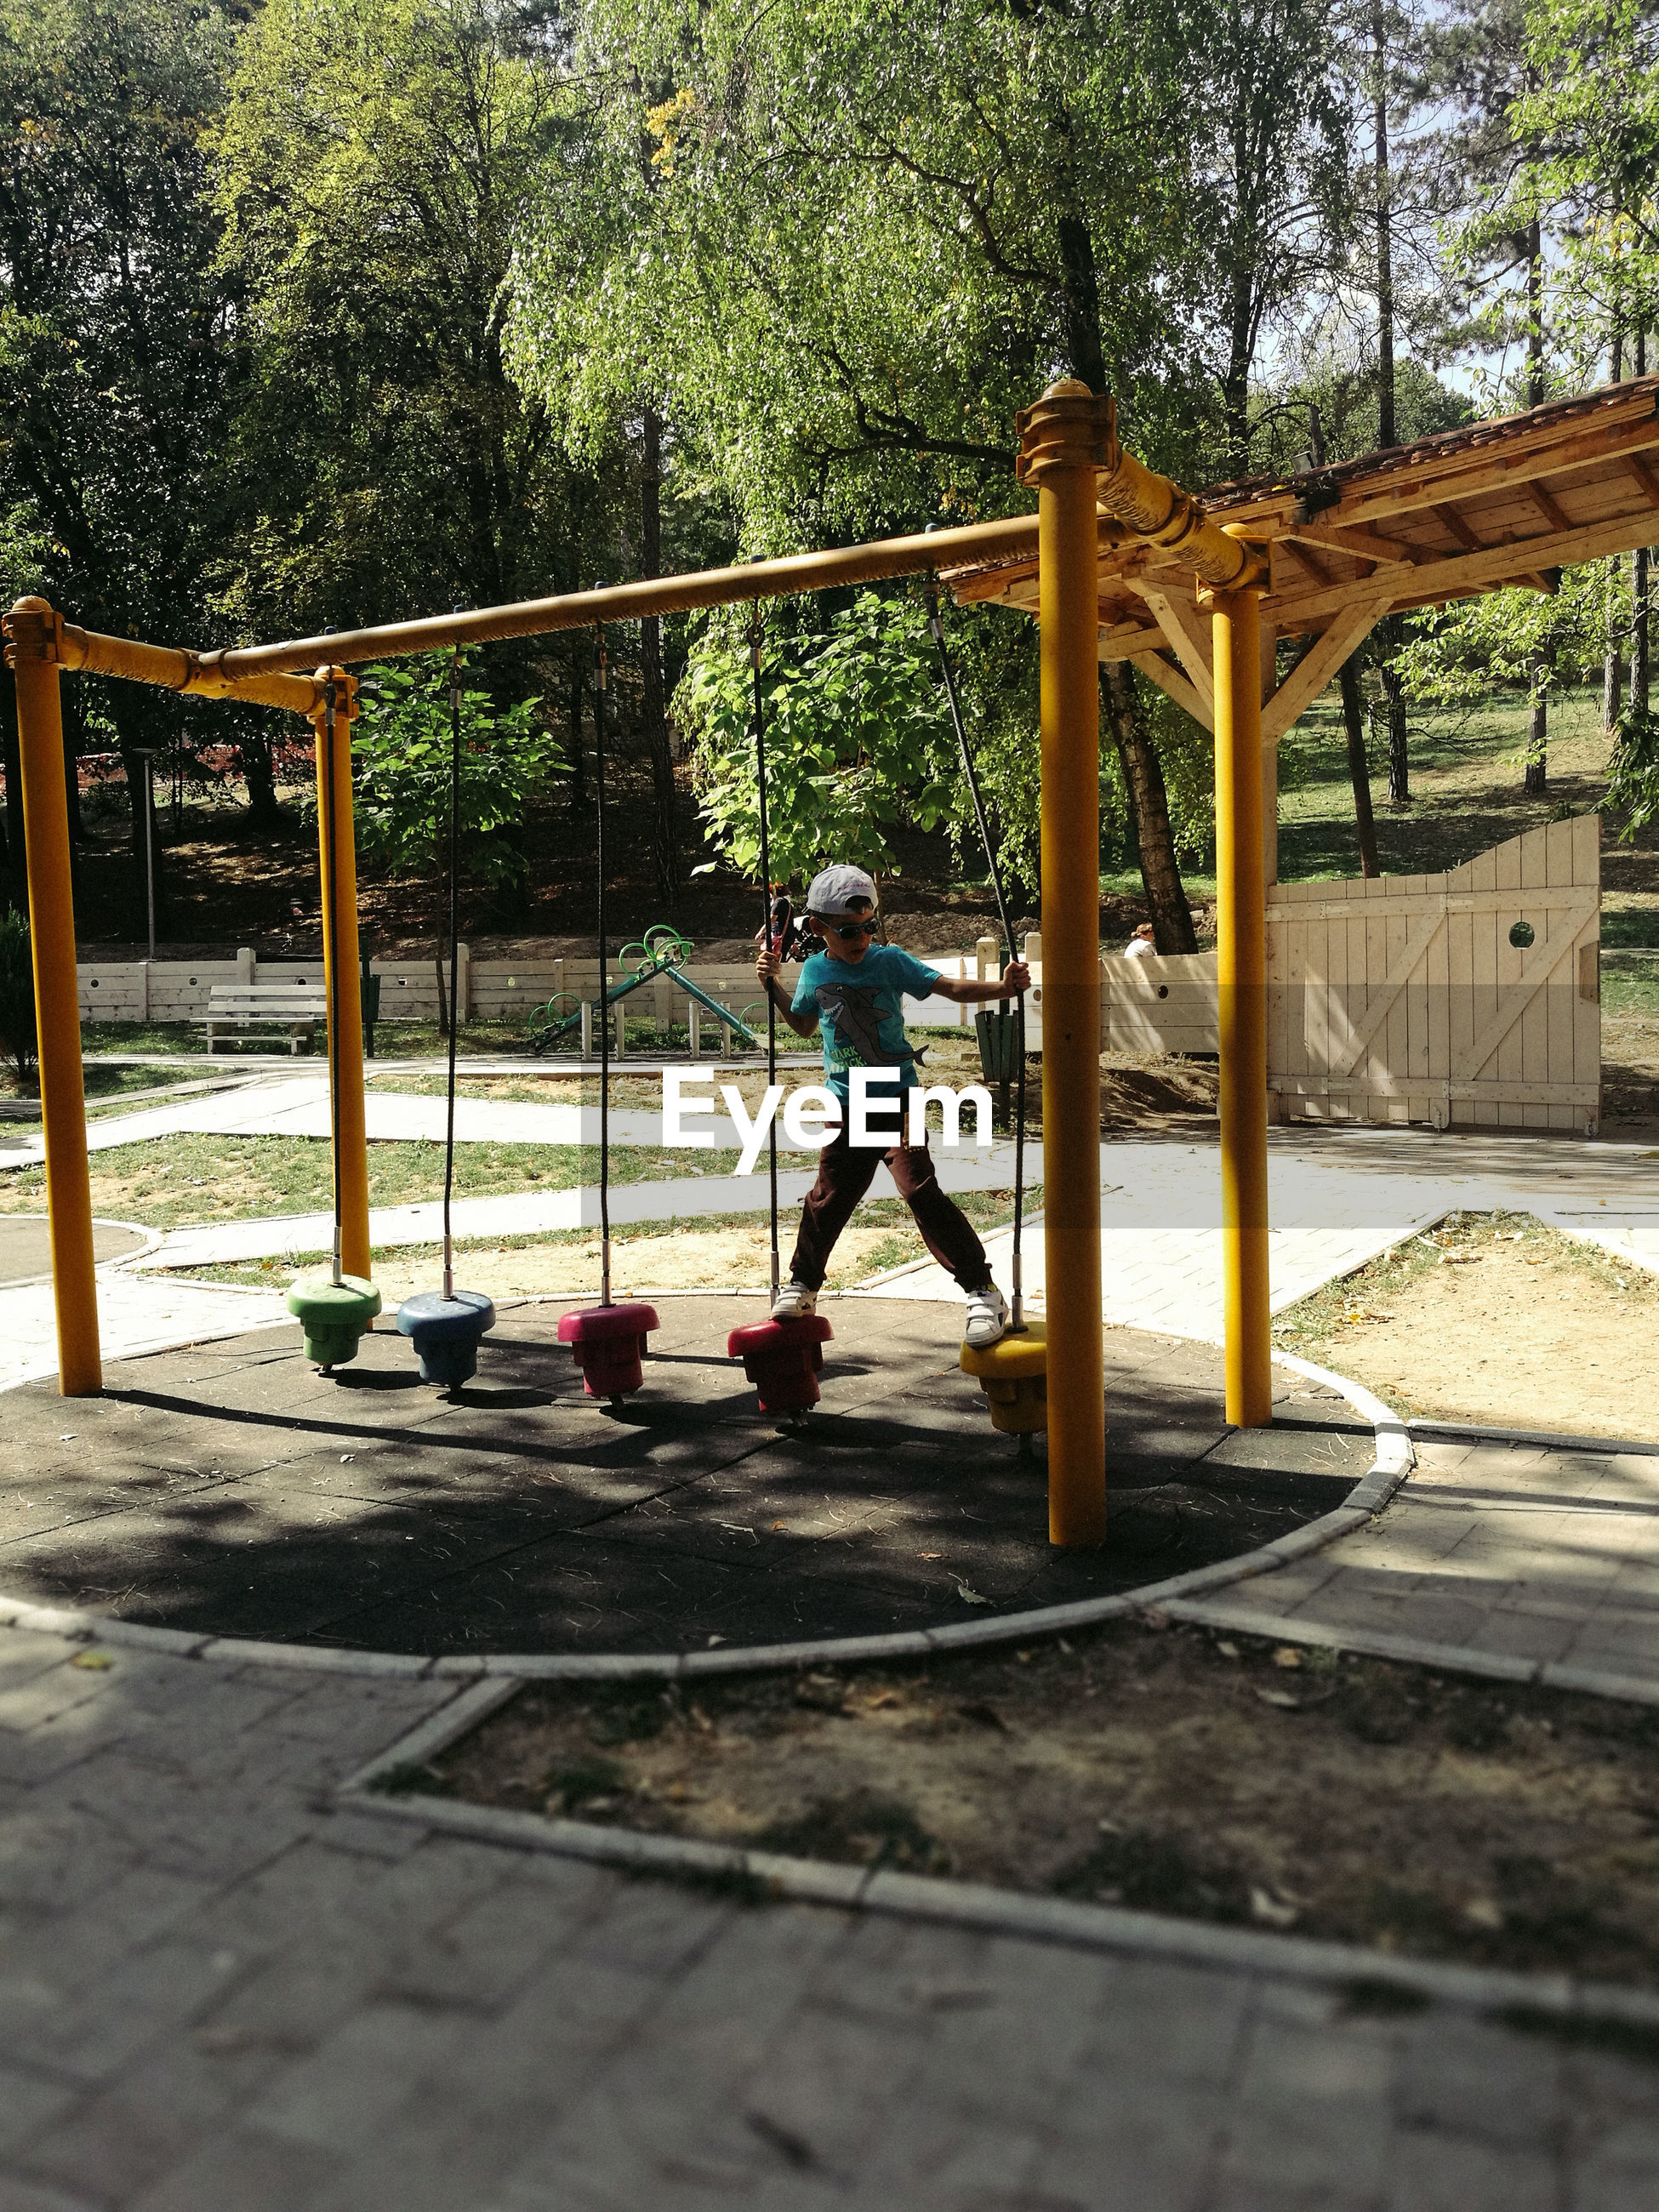 Boy playing with outdoor play equipment at playground